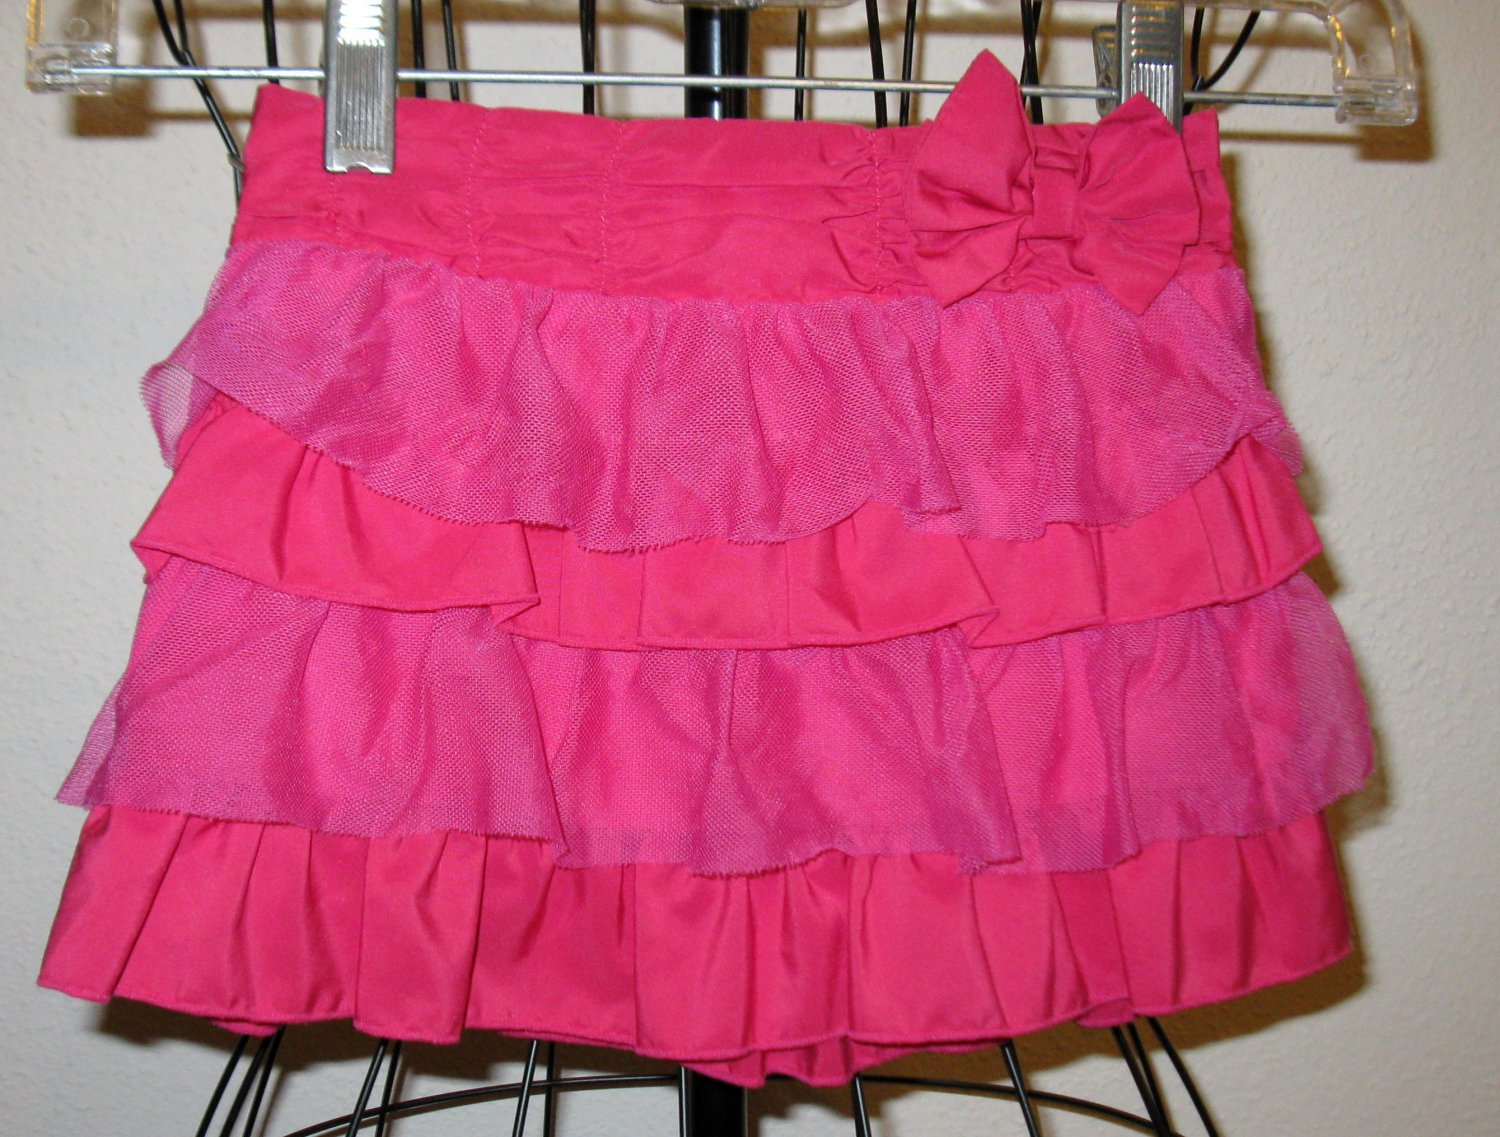 Cute Hot Pink Ruffle Skirt by Healthtex Child Size 3T Nice! #X184